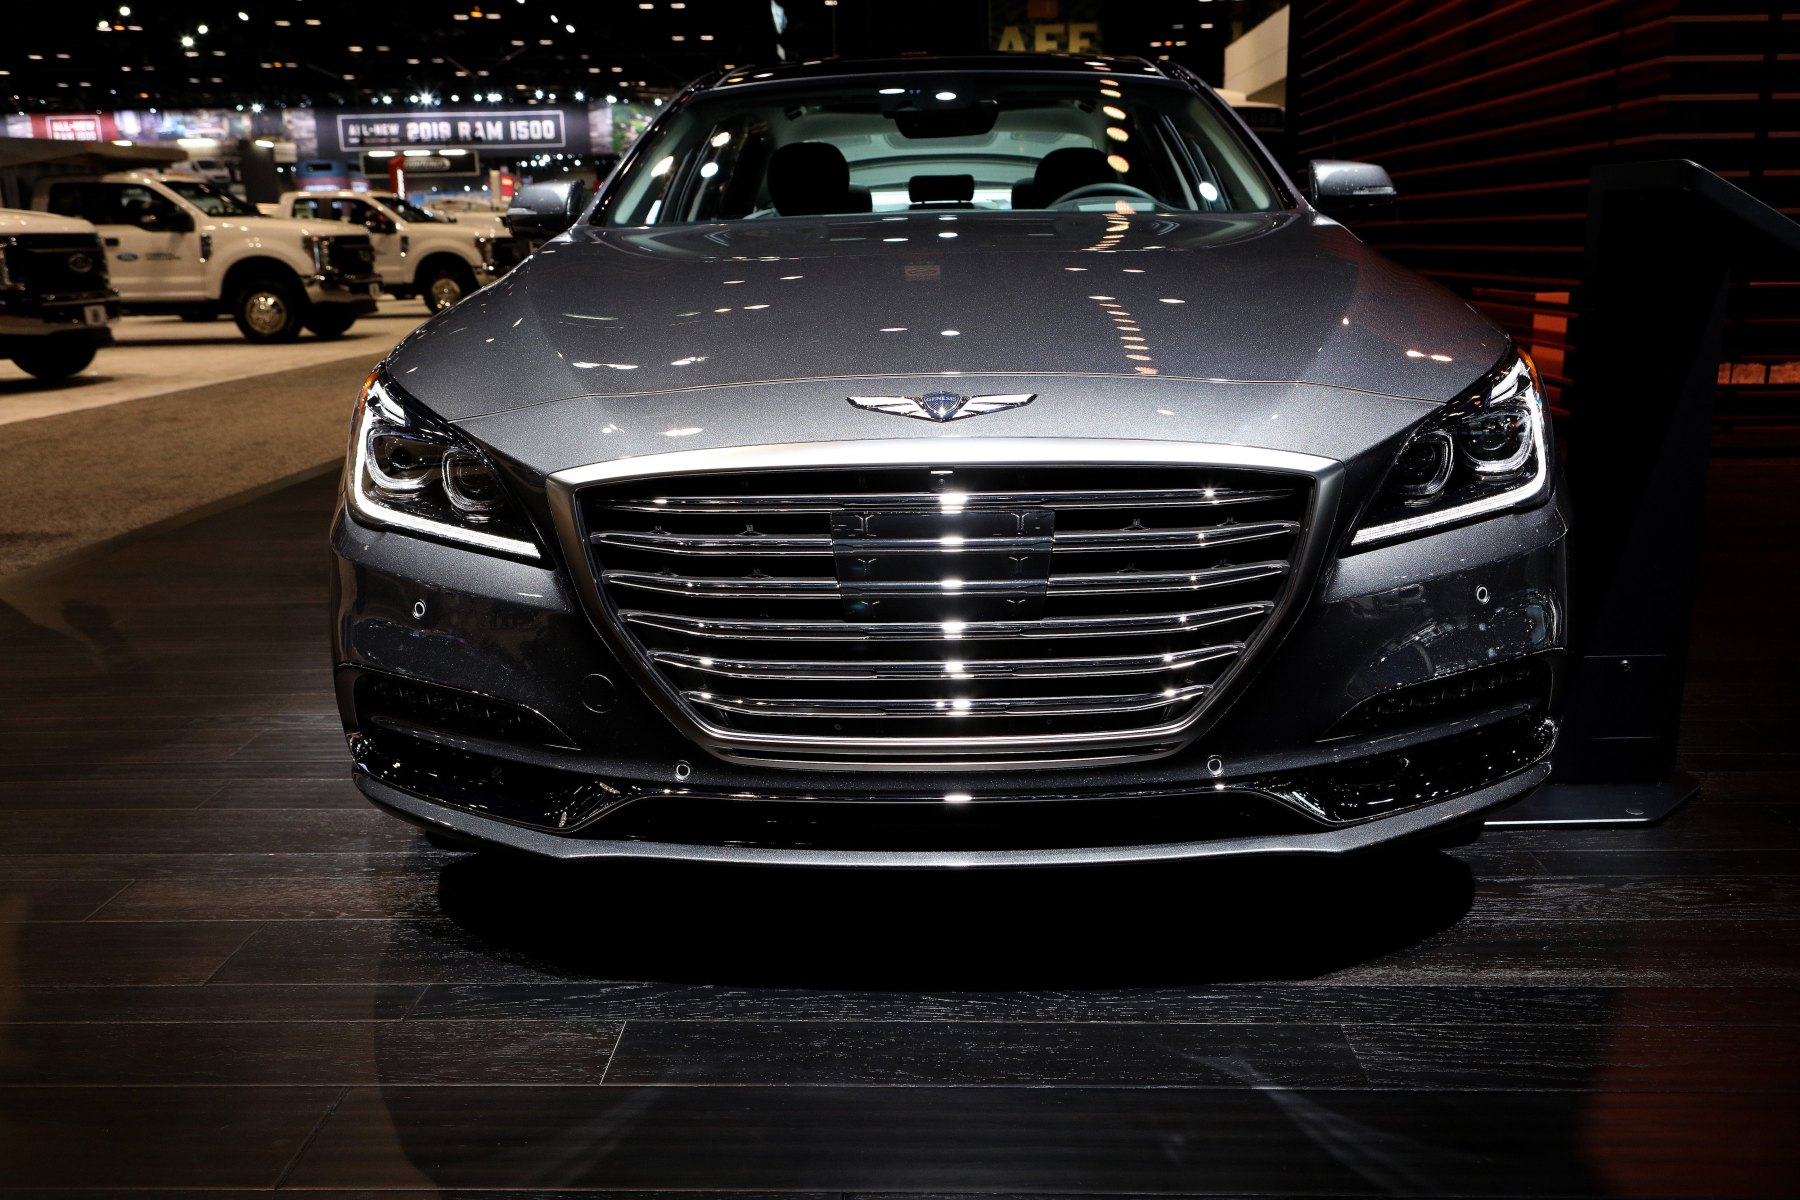 2018 Genesis G80 is on display at the 110th Annual Chicago Auto Show at McCormick Place in Chicago, Illinois on February 9, 2018.  (Raymond Boyd/Getty Images)